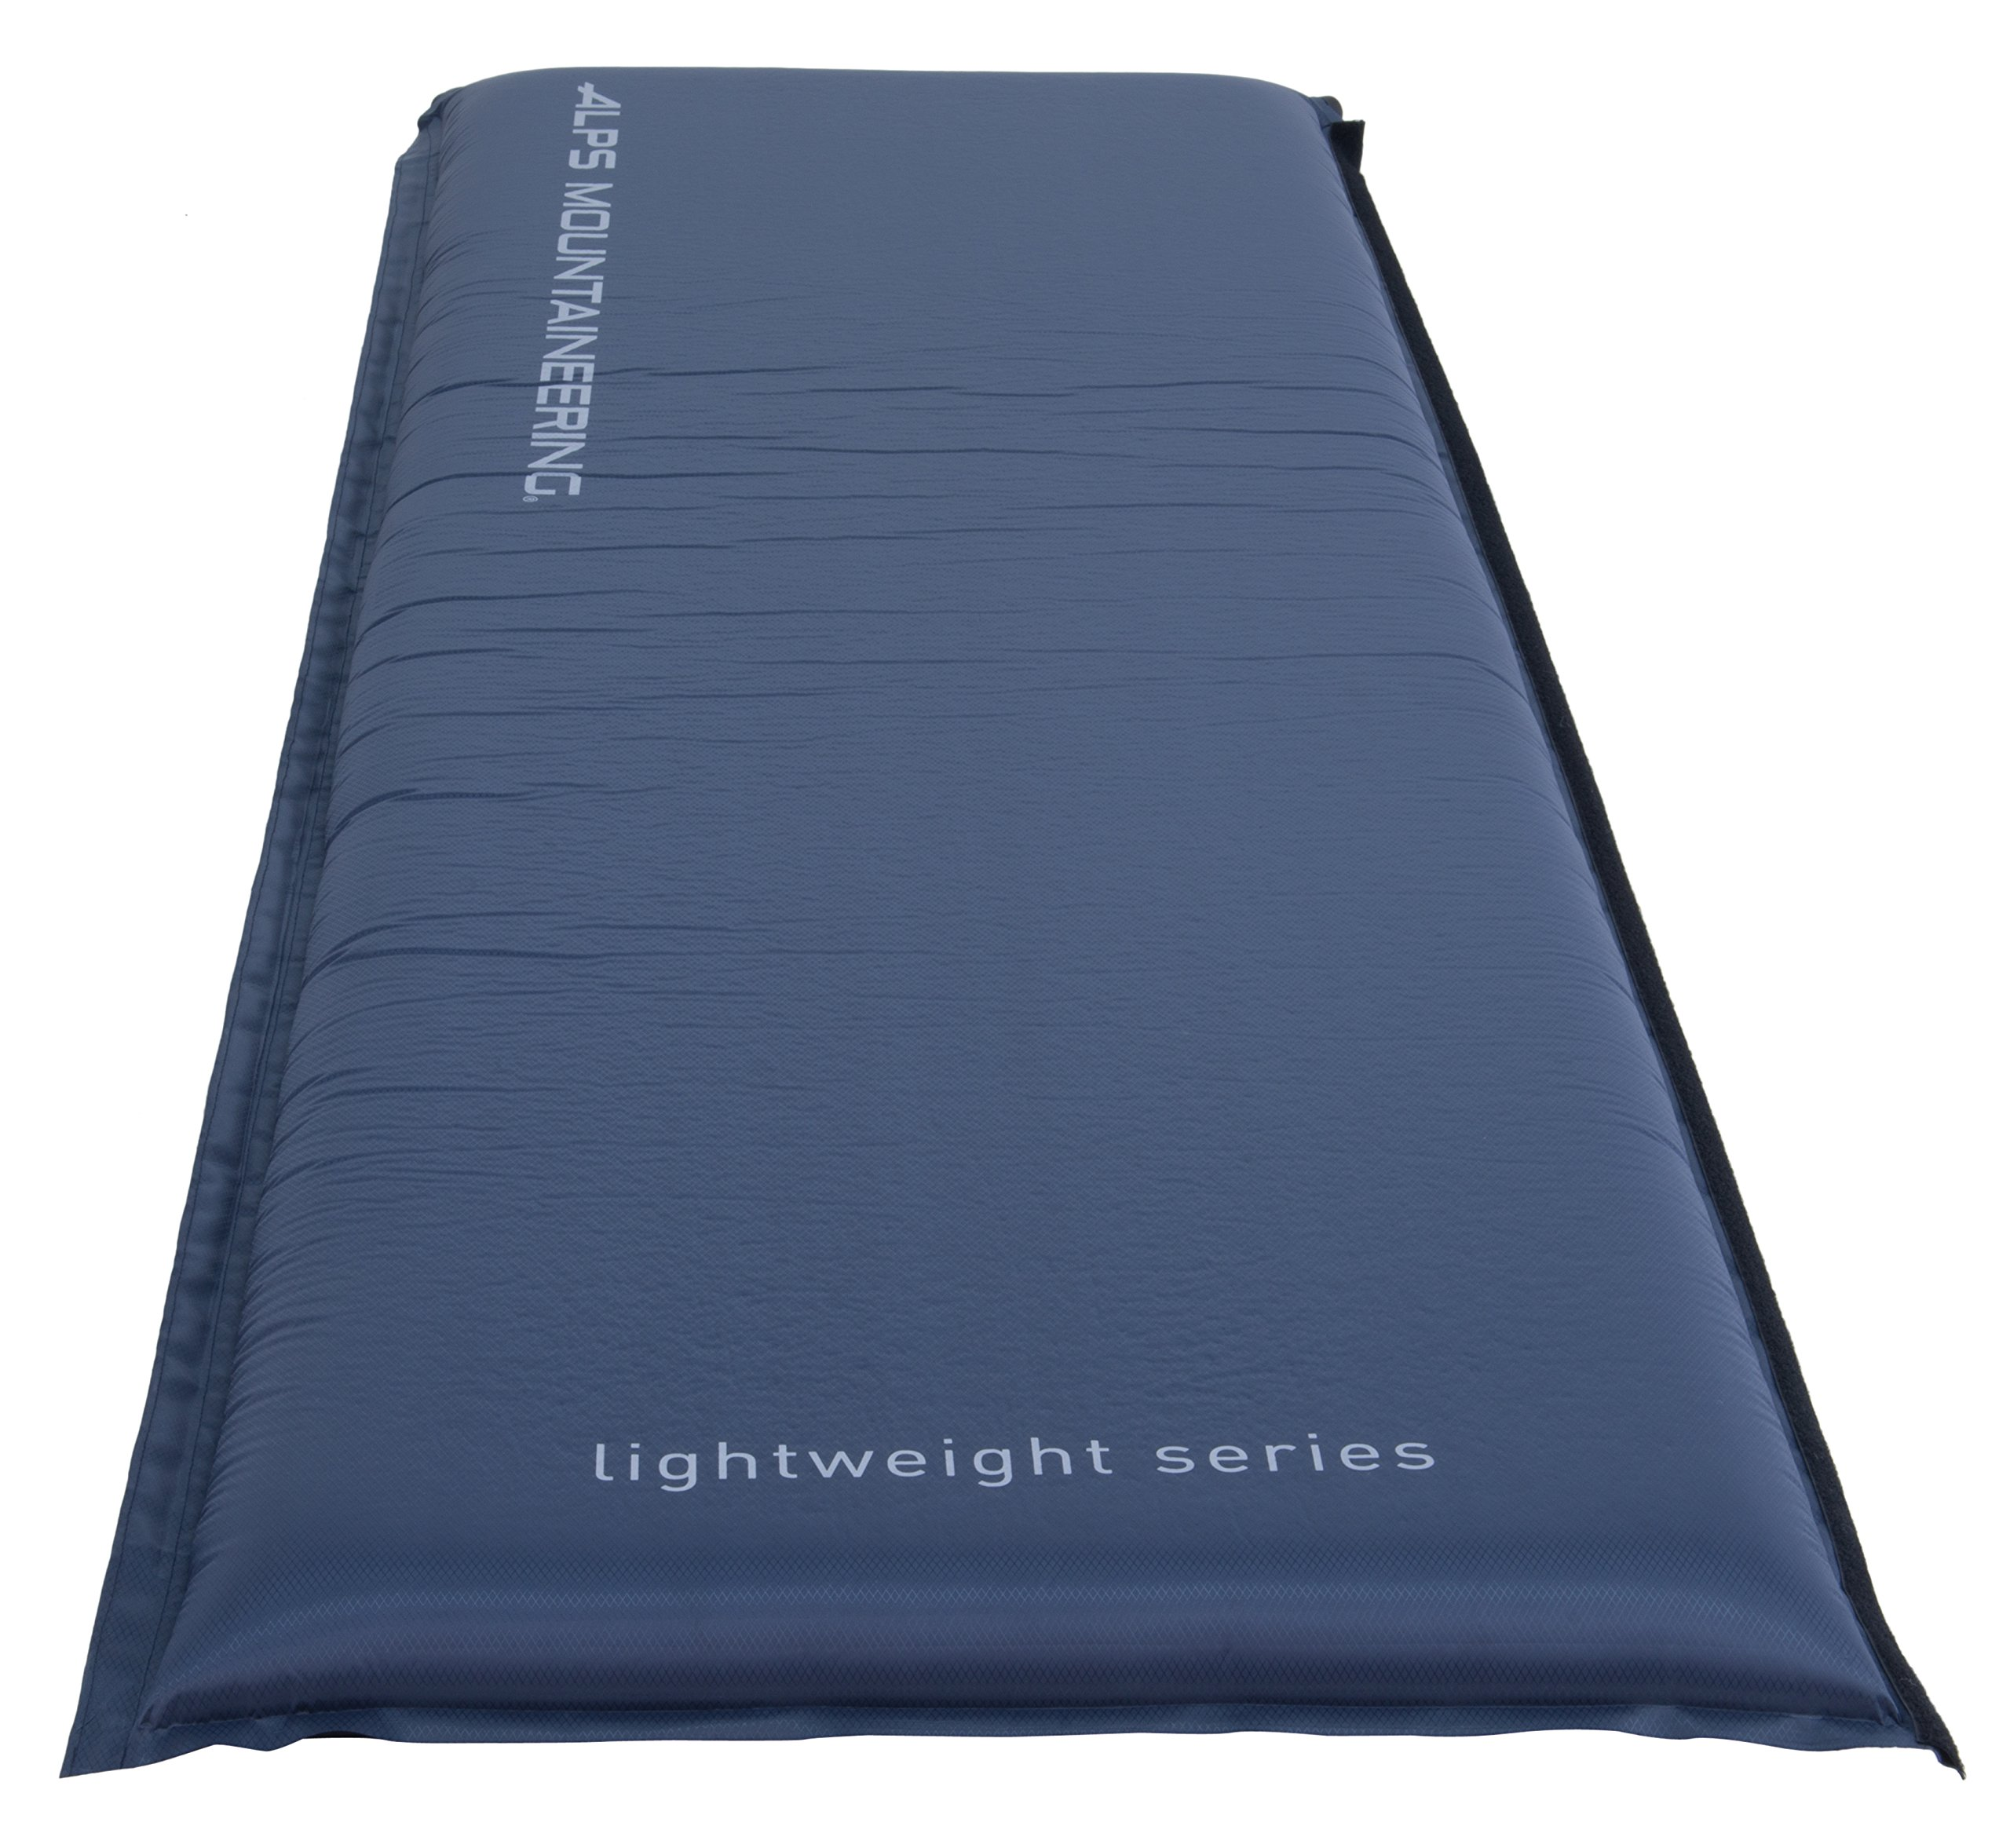 ALPS Mountaineering Lightweight Series Self-Inflating Air Pad-Double by ALPS Mountaineering (Image #2)